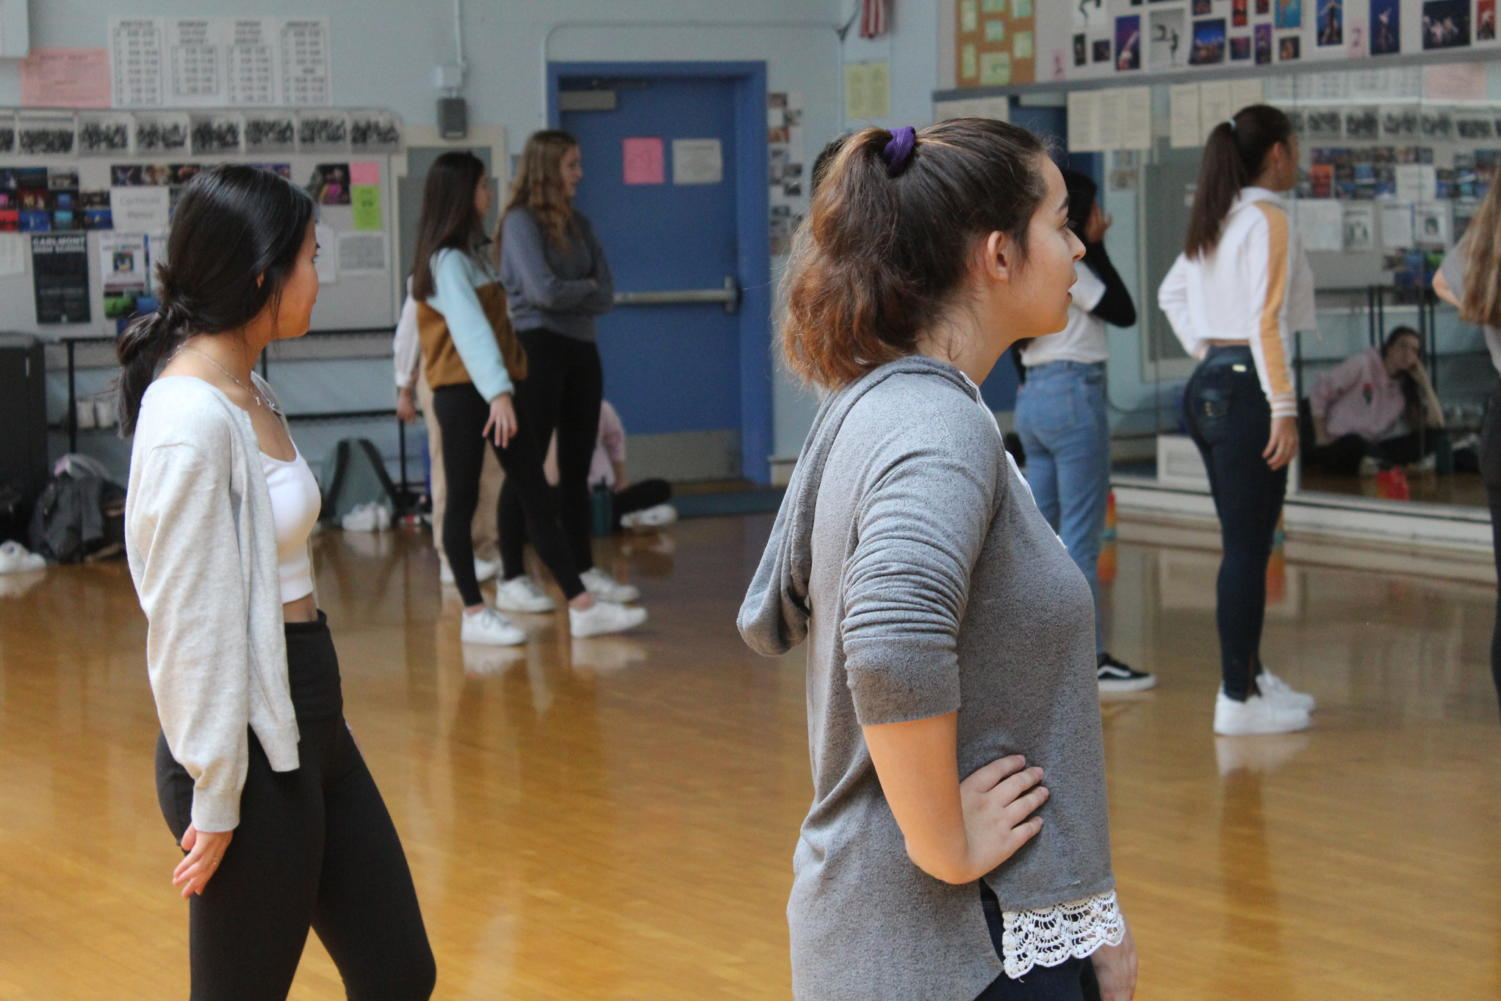 Hailey Hamady, a junior, watches as the choreographer explains the next section of the dance.